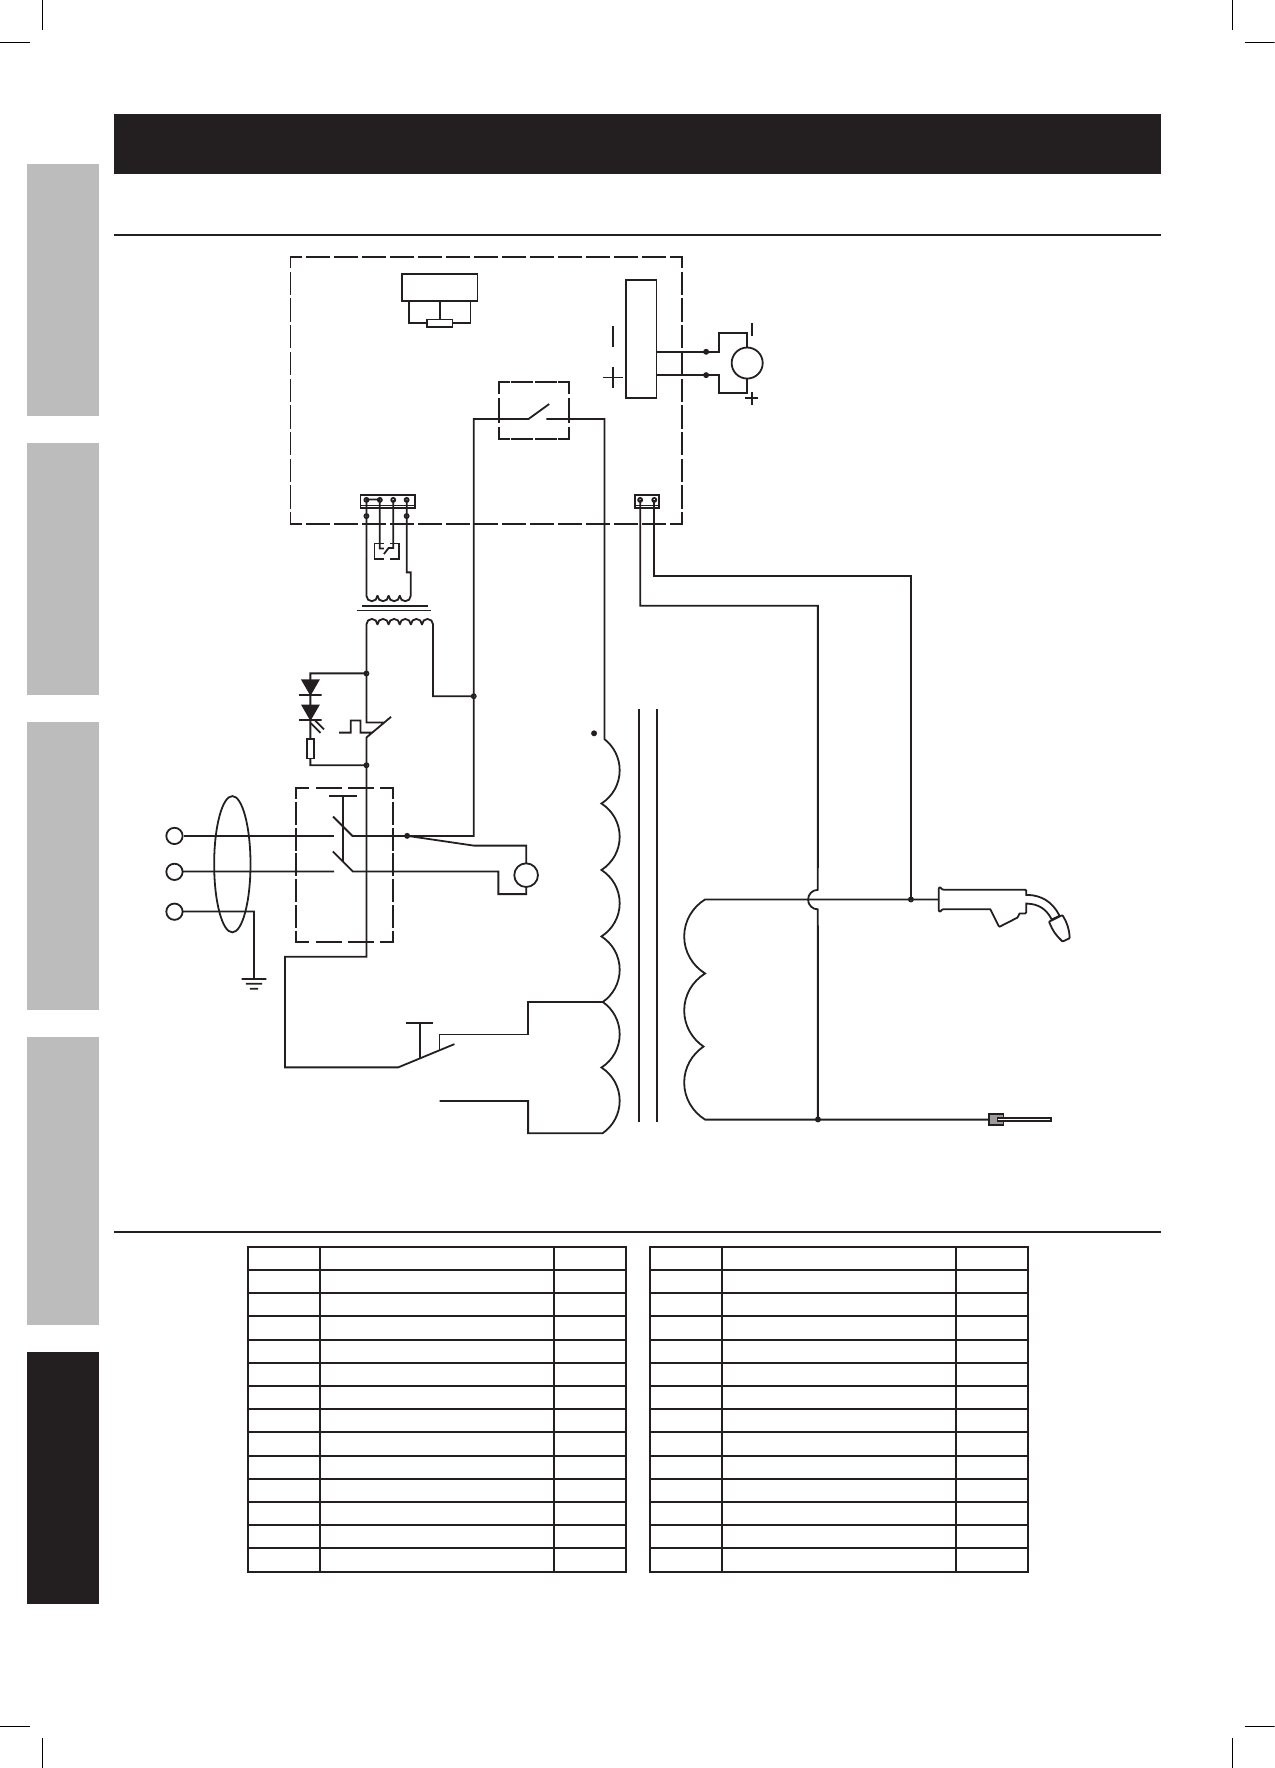 468d6b31 5cde 4c03 9c20 4d9eaab5824b bg1a page 26 of chicago electric welder 68887 user guide wiring diagram for chicago electric welder at edmiracle.co